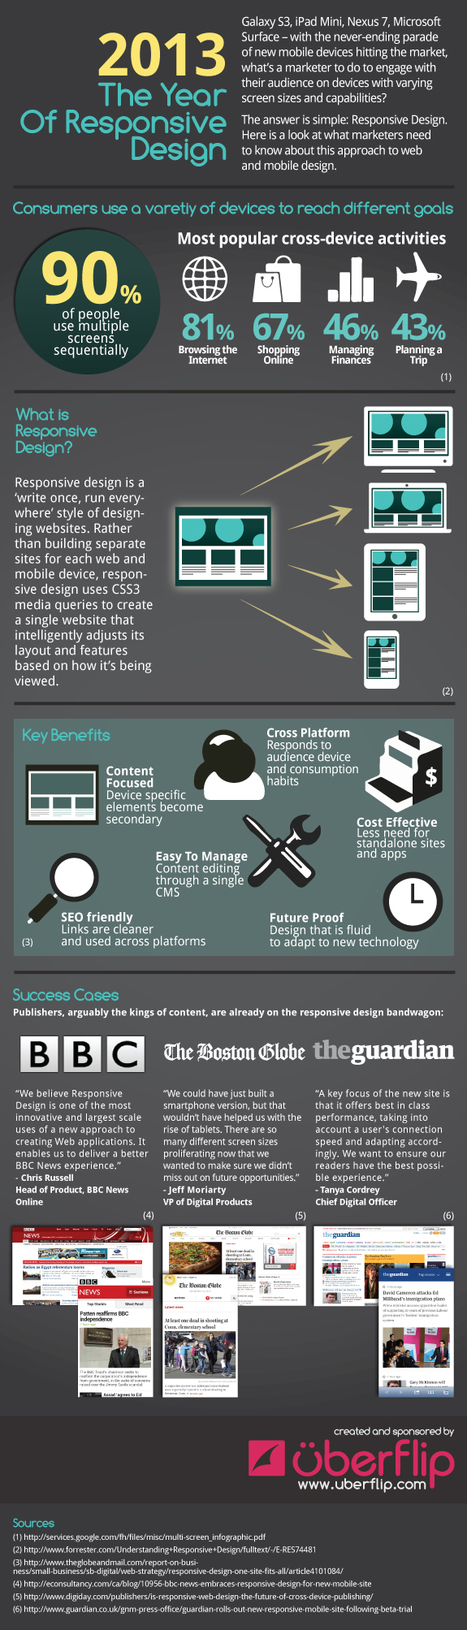 2013: The Year of Responsive Design [Infographic] | Get Elastic Ecommerce Blog | Diseño Web Responsive | Scoop.it